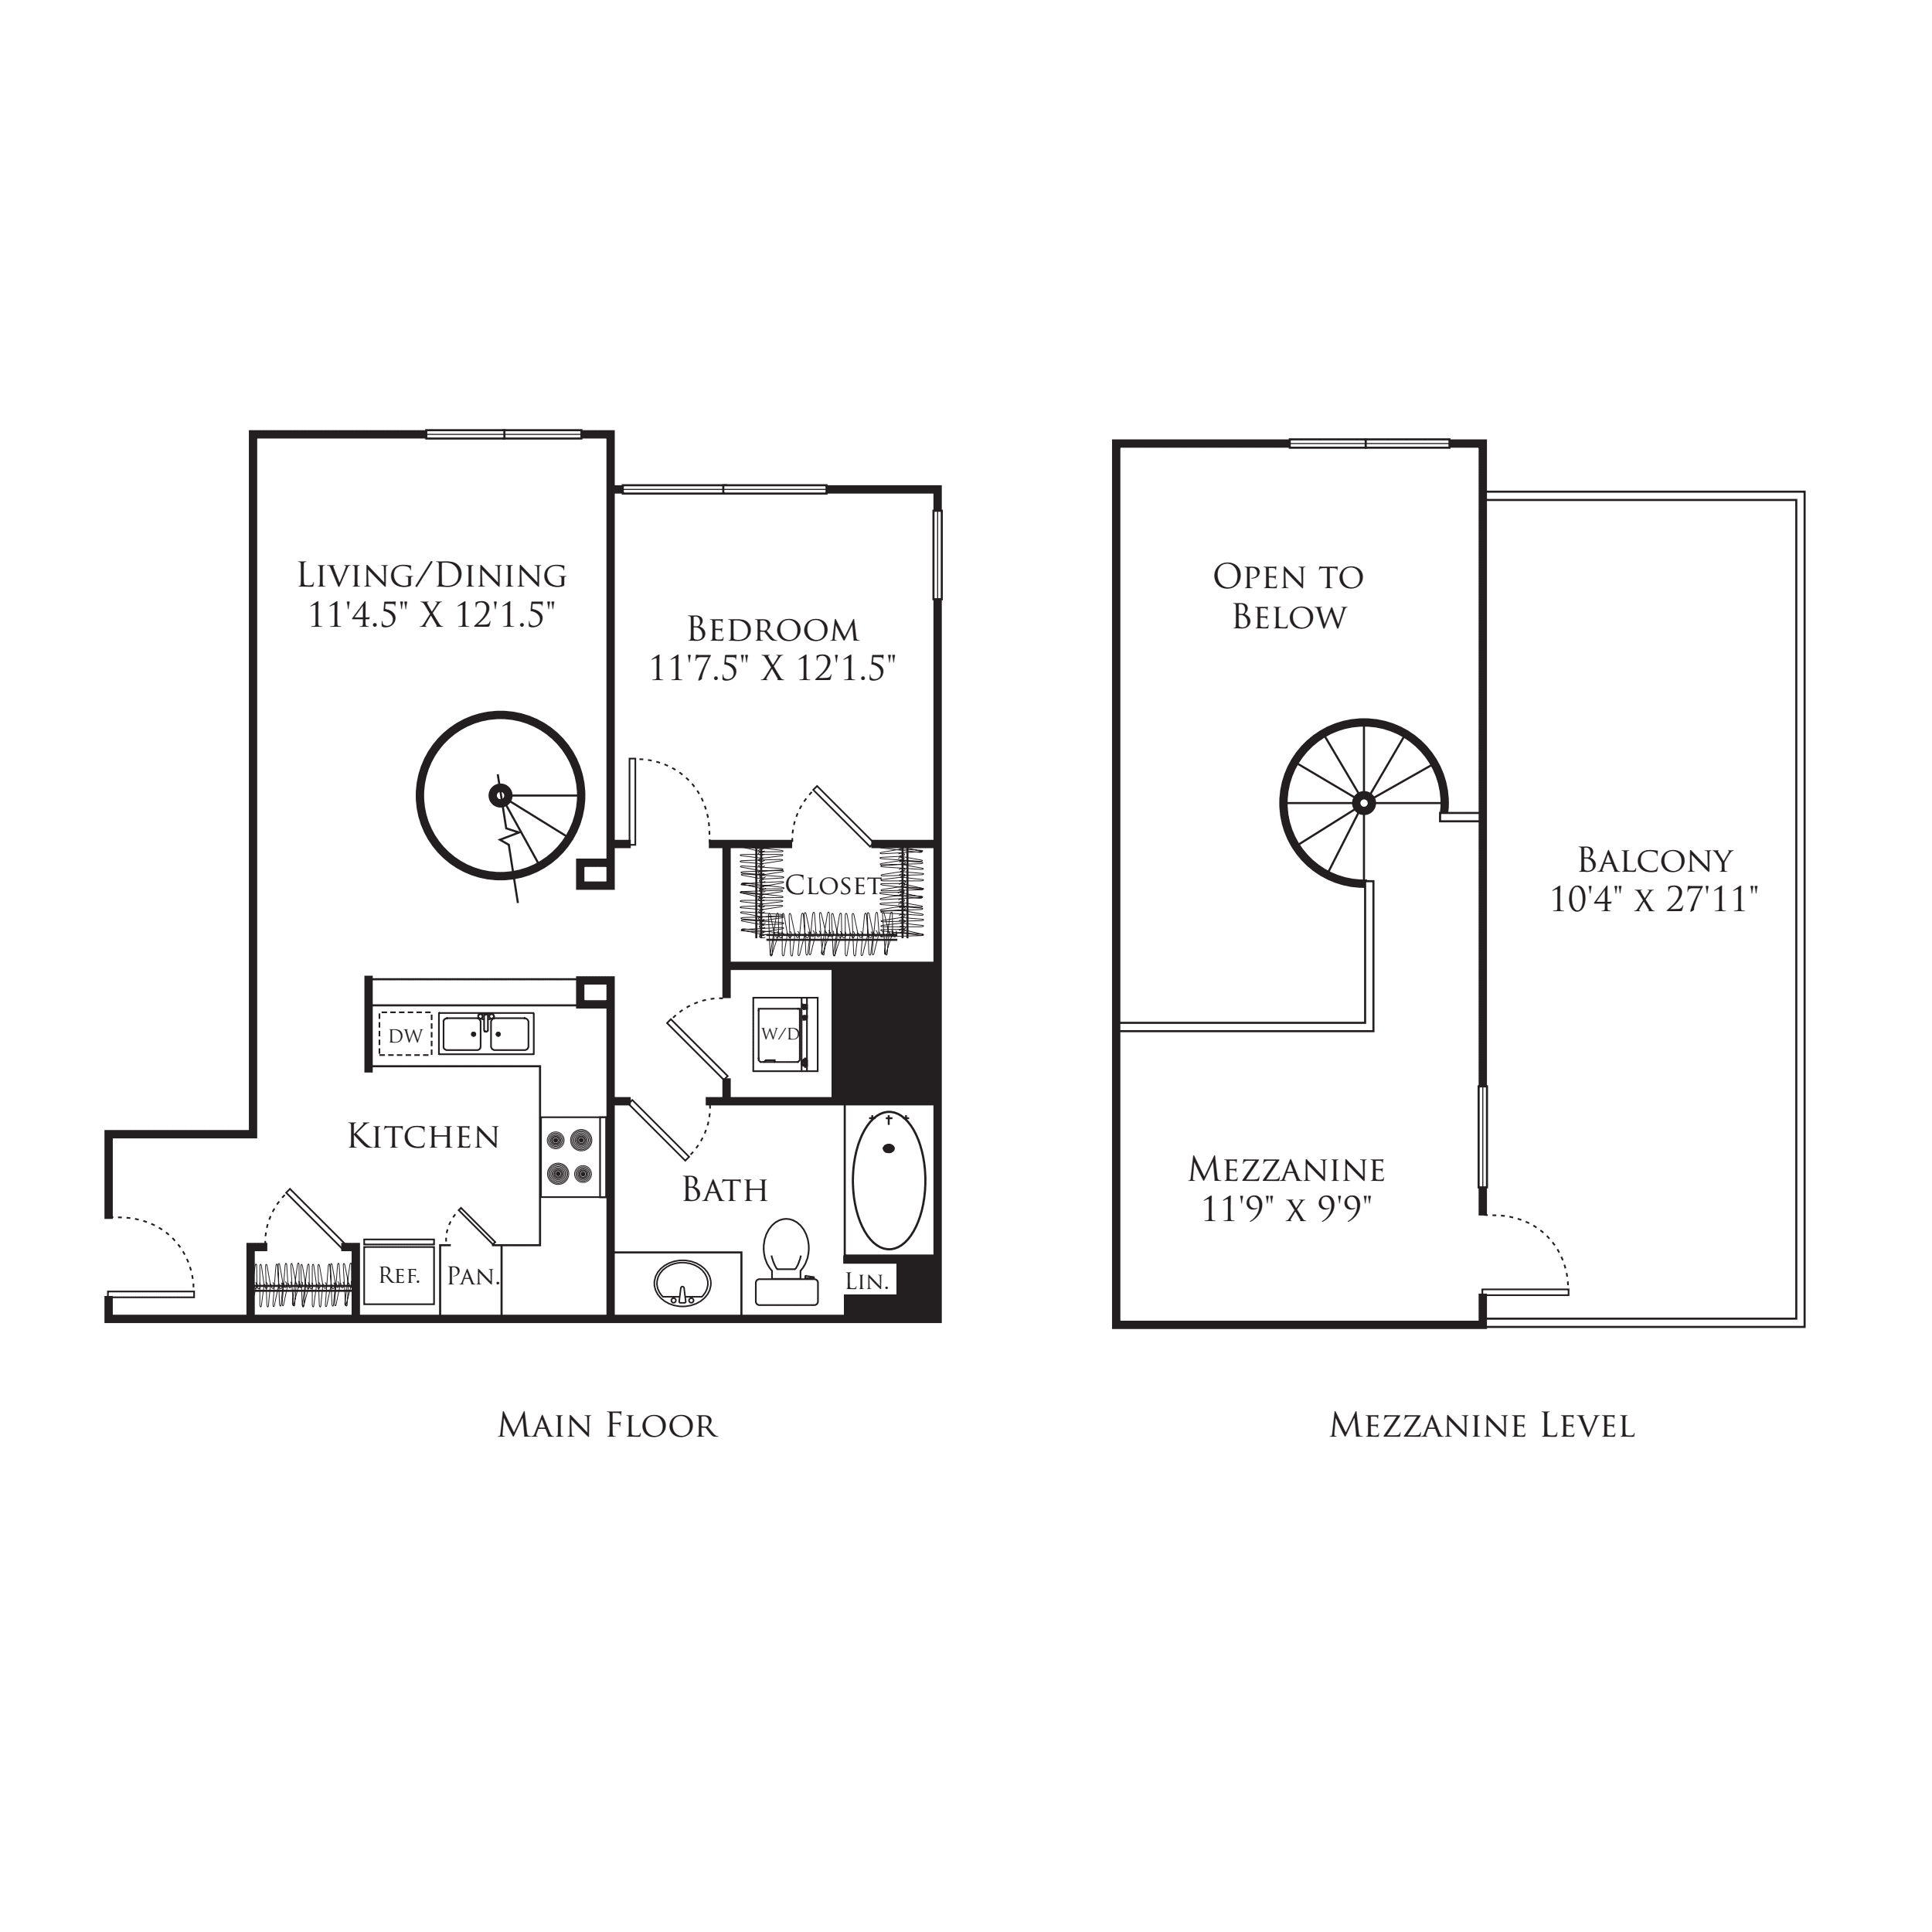 1 Bedroom MD